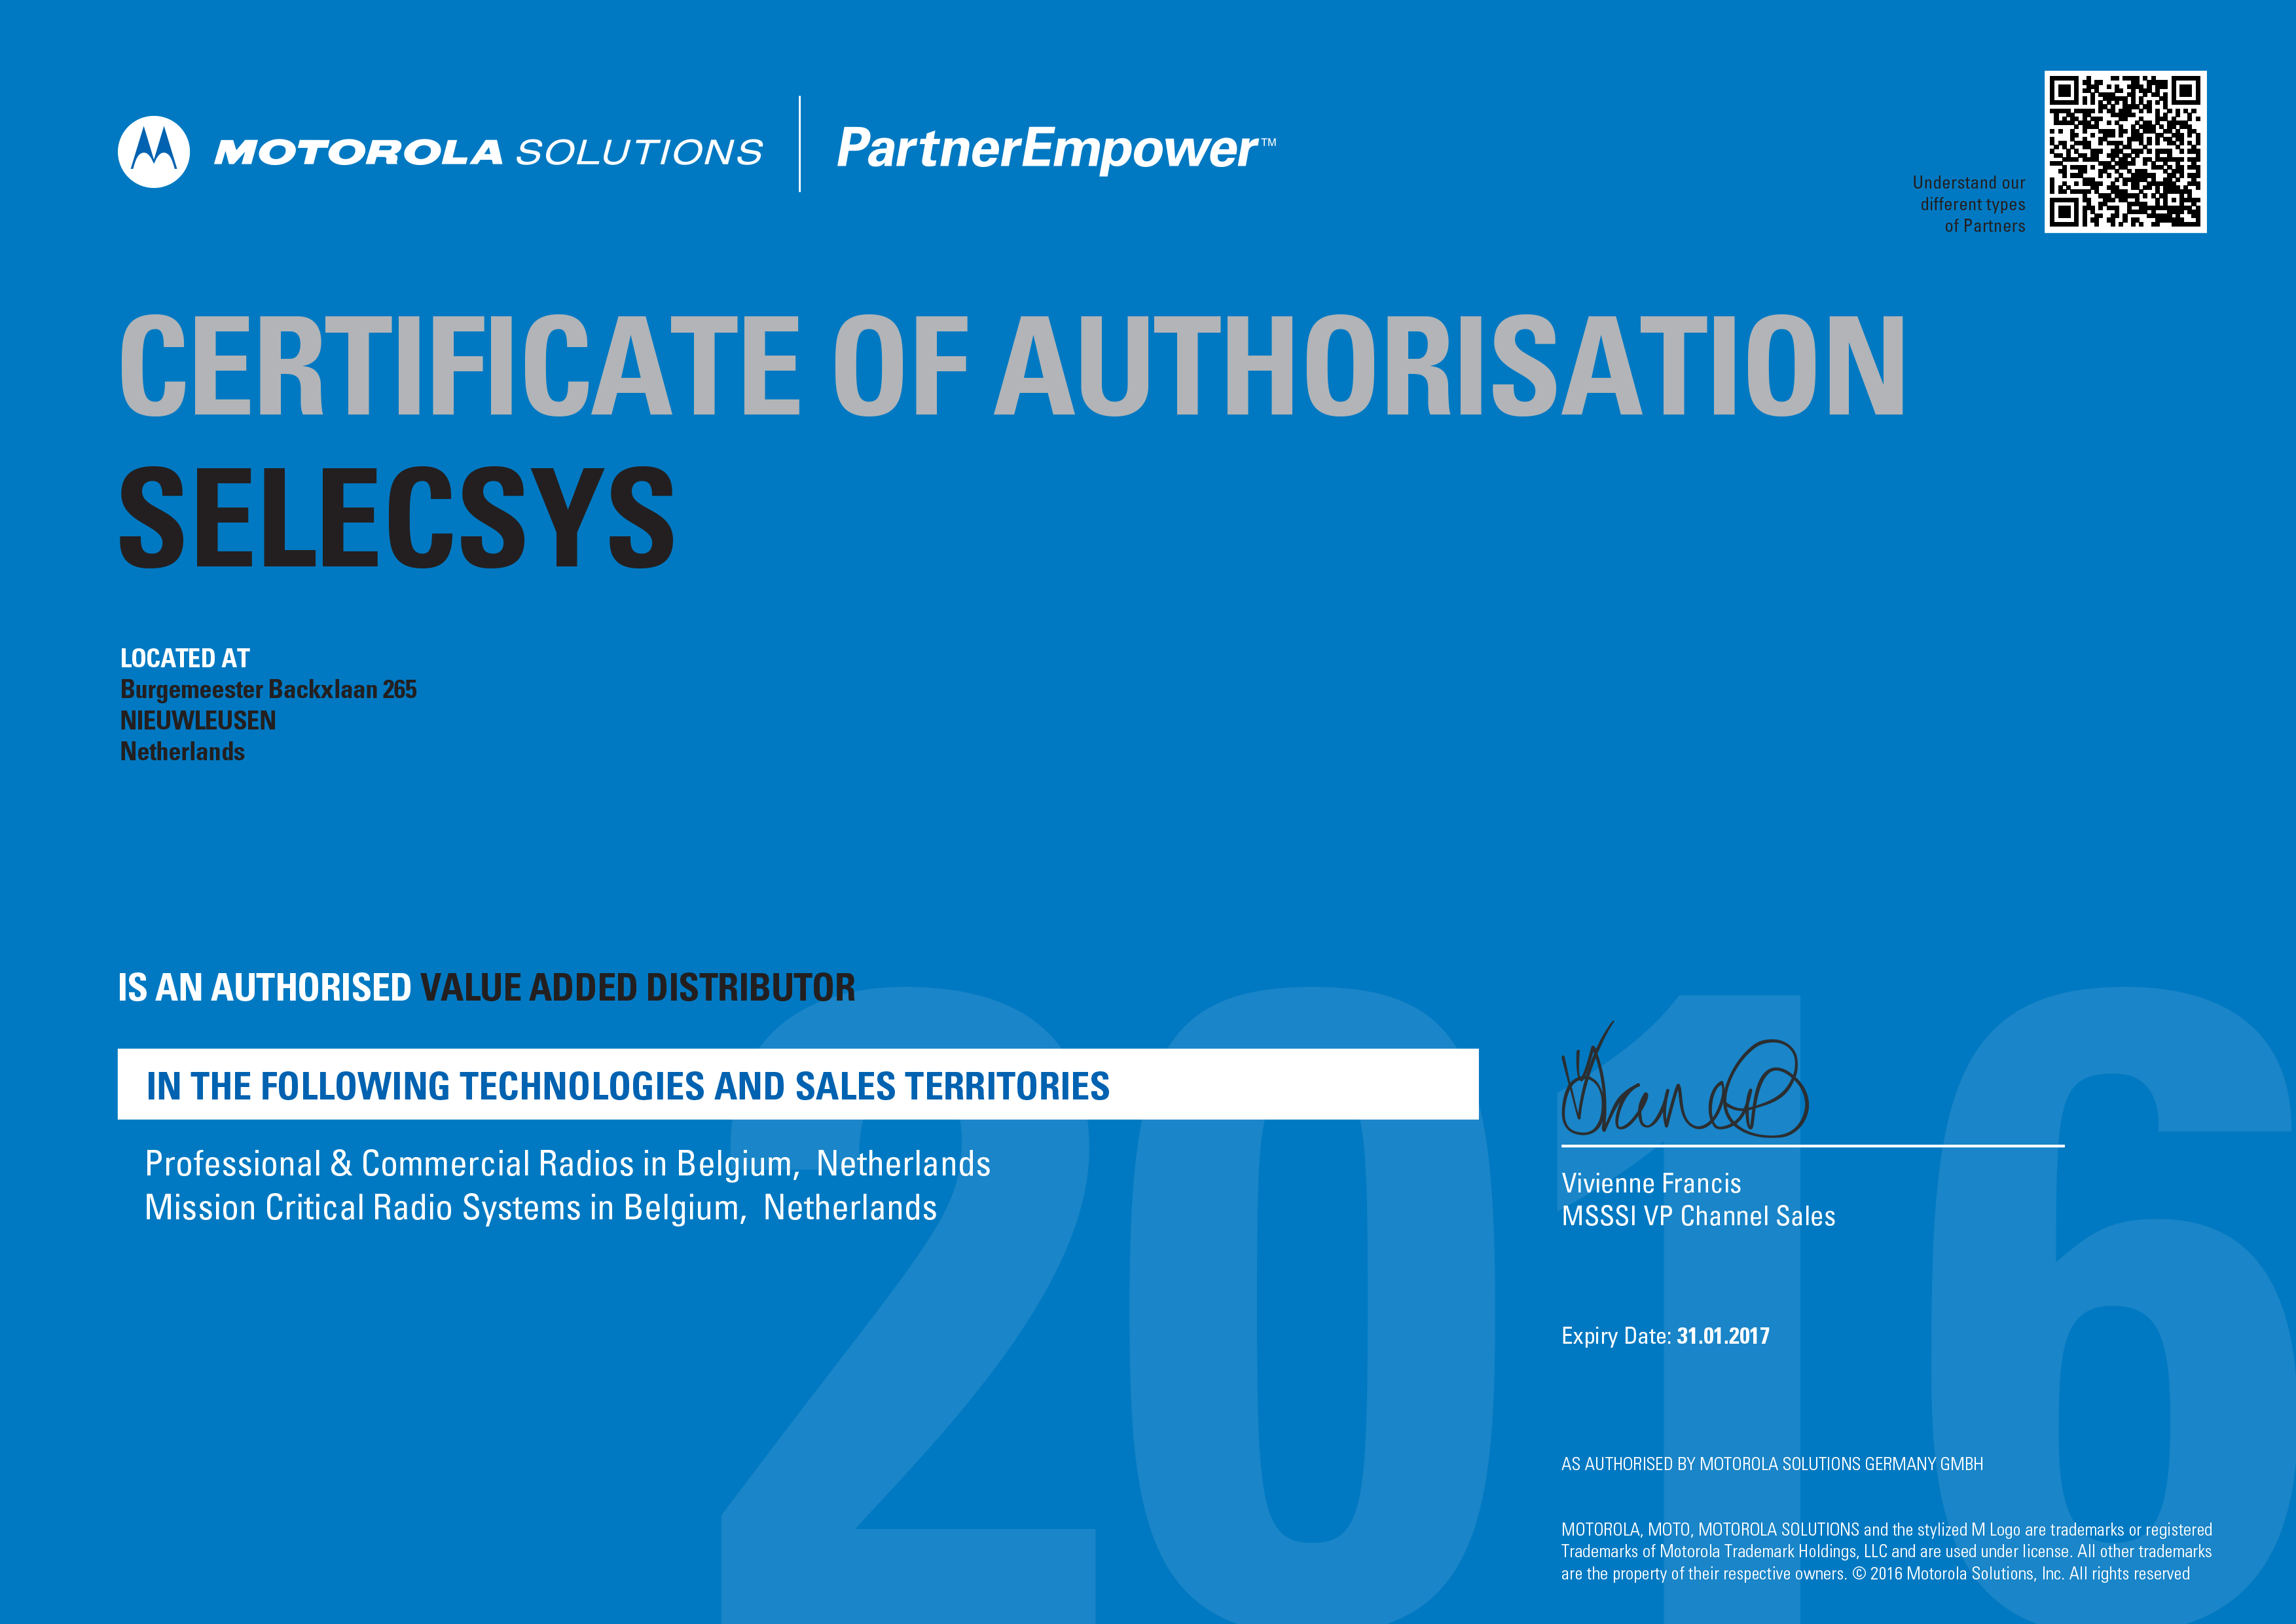 Certificate of autorisation selecsys